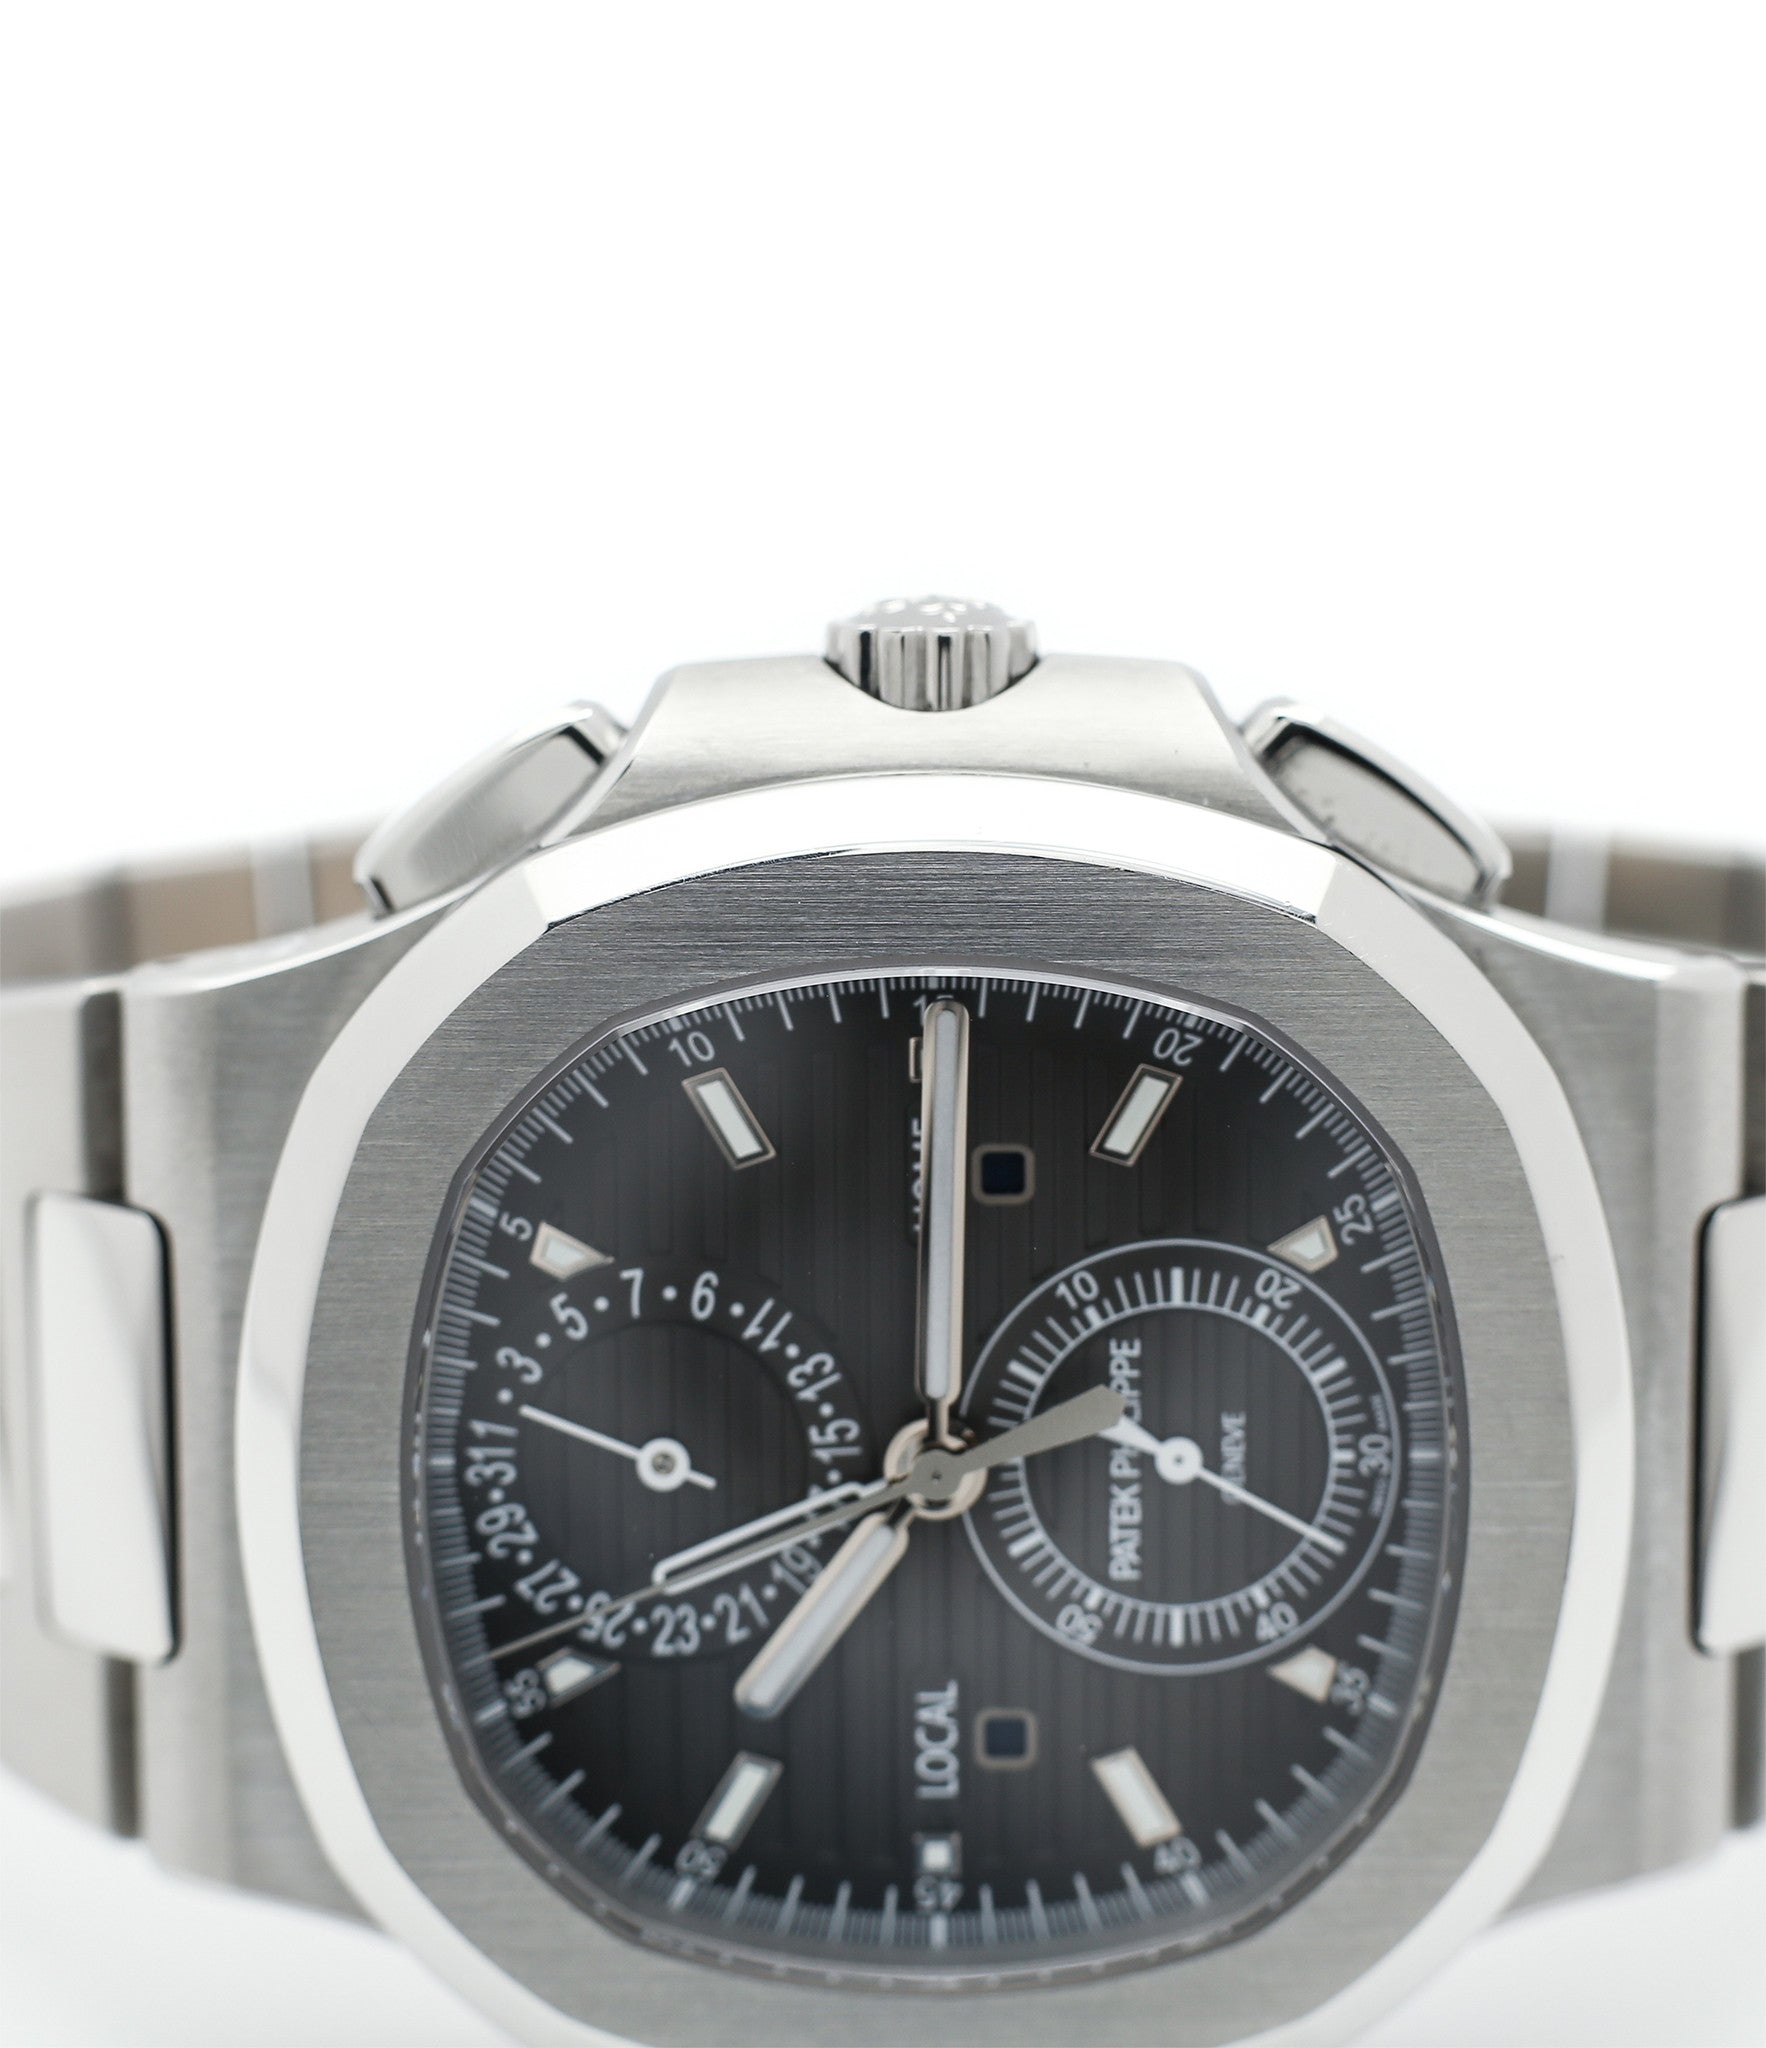 sell Patek Philippe Nautilius Travel-Time Chronograph 5990 steel pre-owned job full set from 2016 for sale online WATCH XCHANGE London with authenticity guaranteed